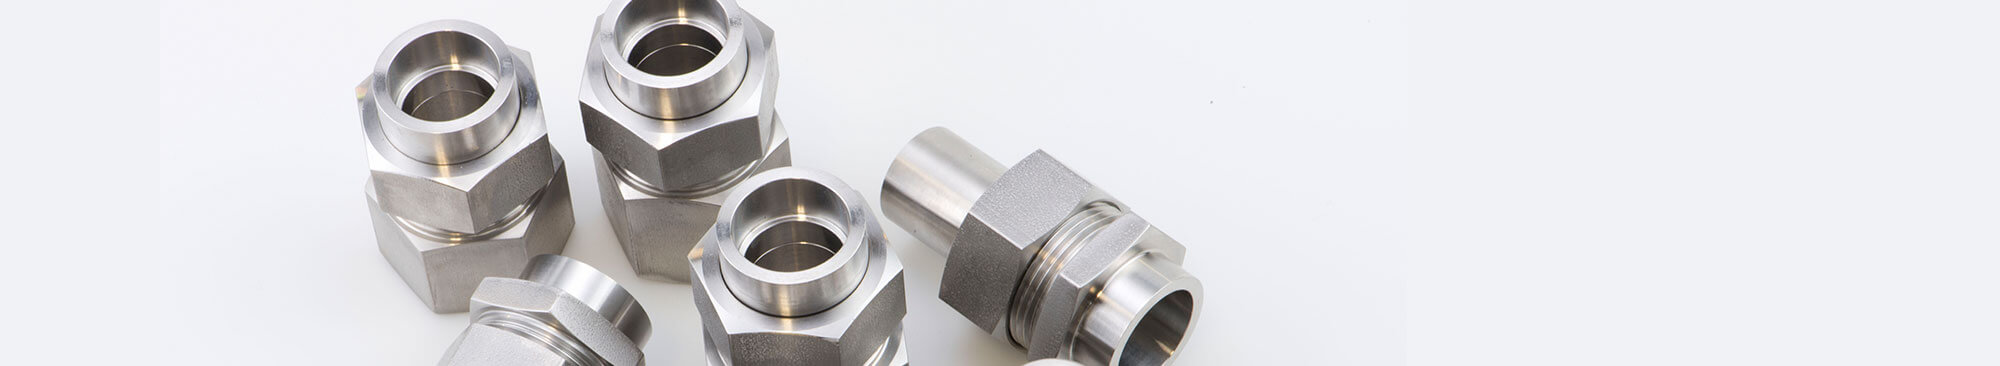 Precision-Engineered Fittings